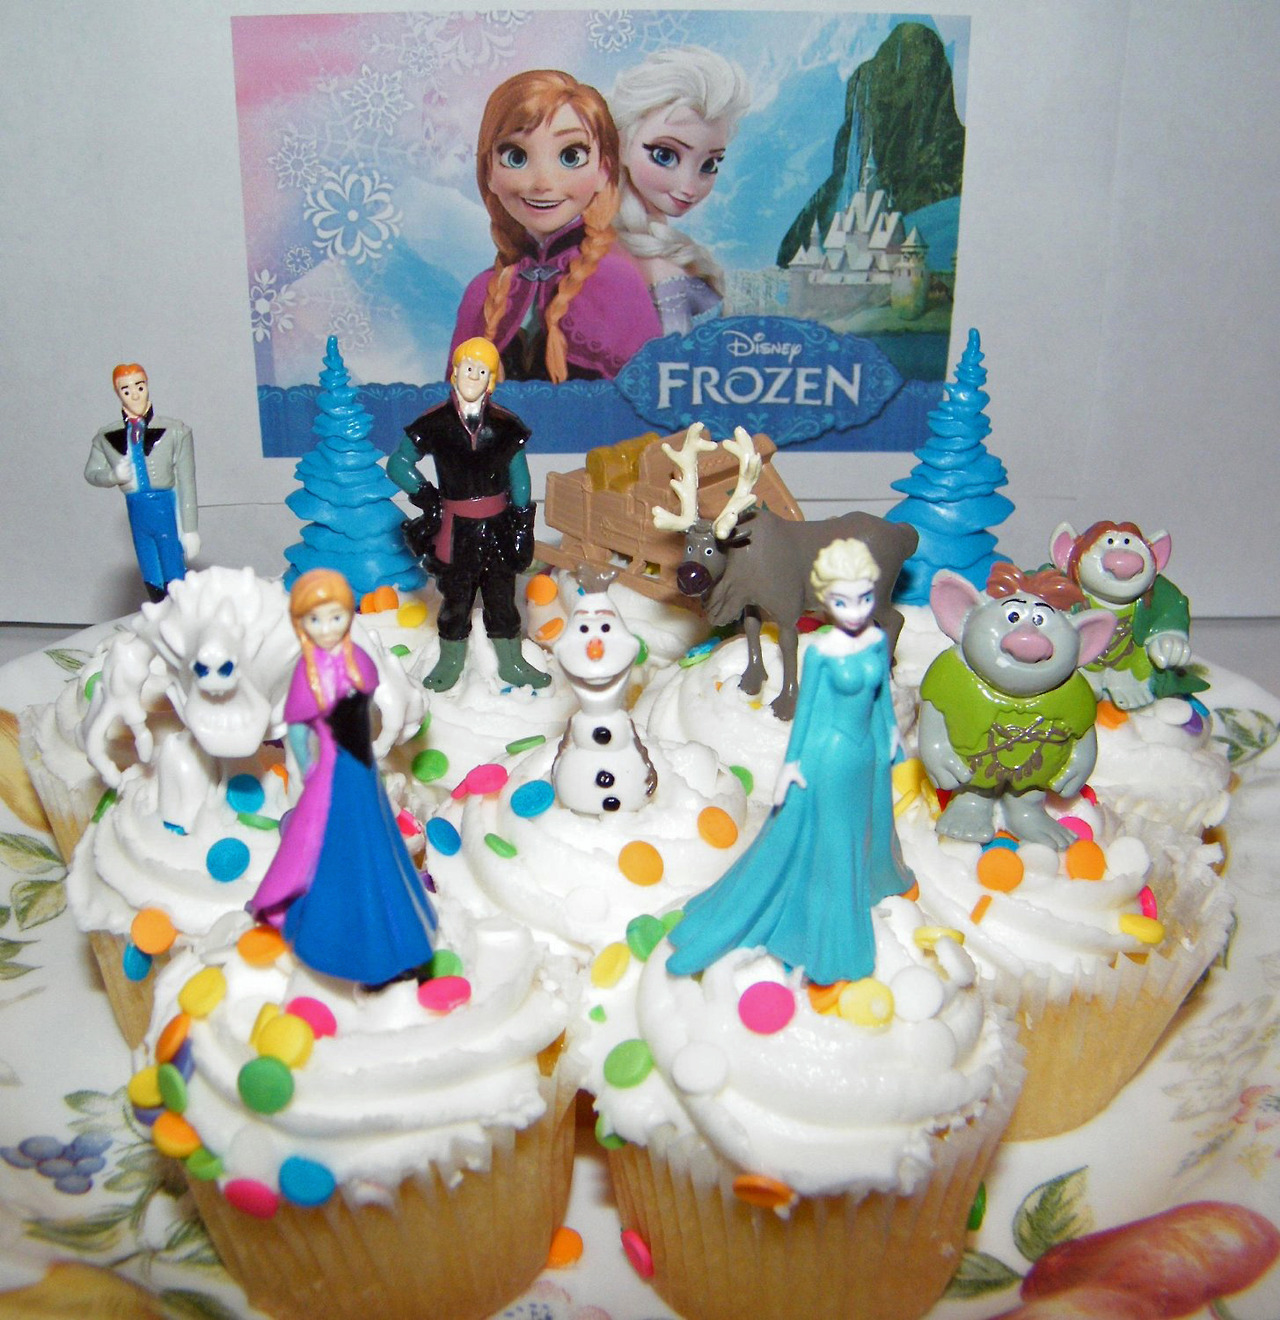 Frozen Cake Toppers Photo 35792482 Fanpop Page 7